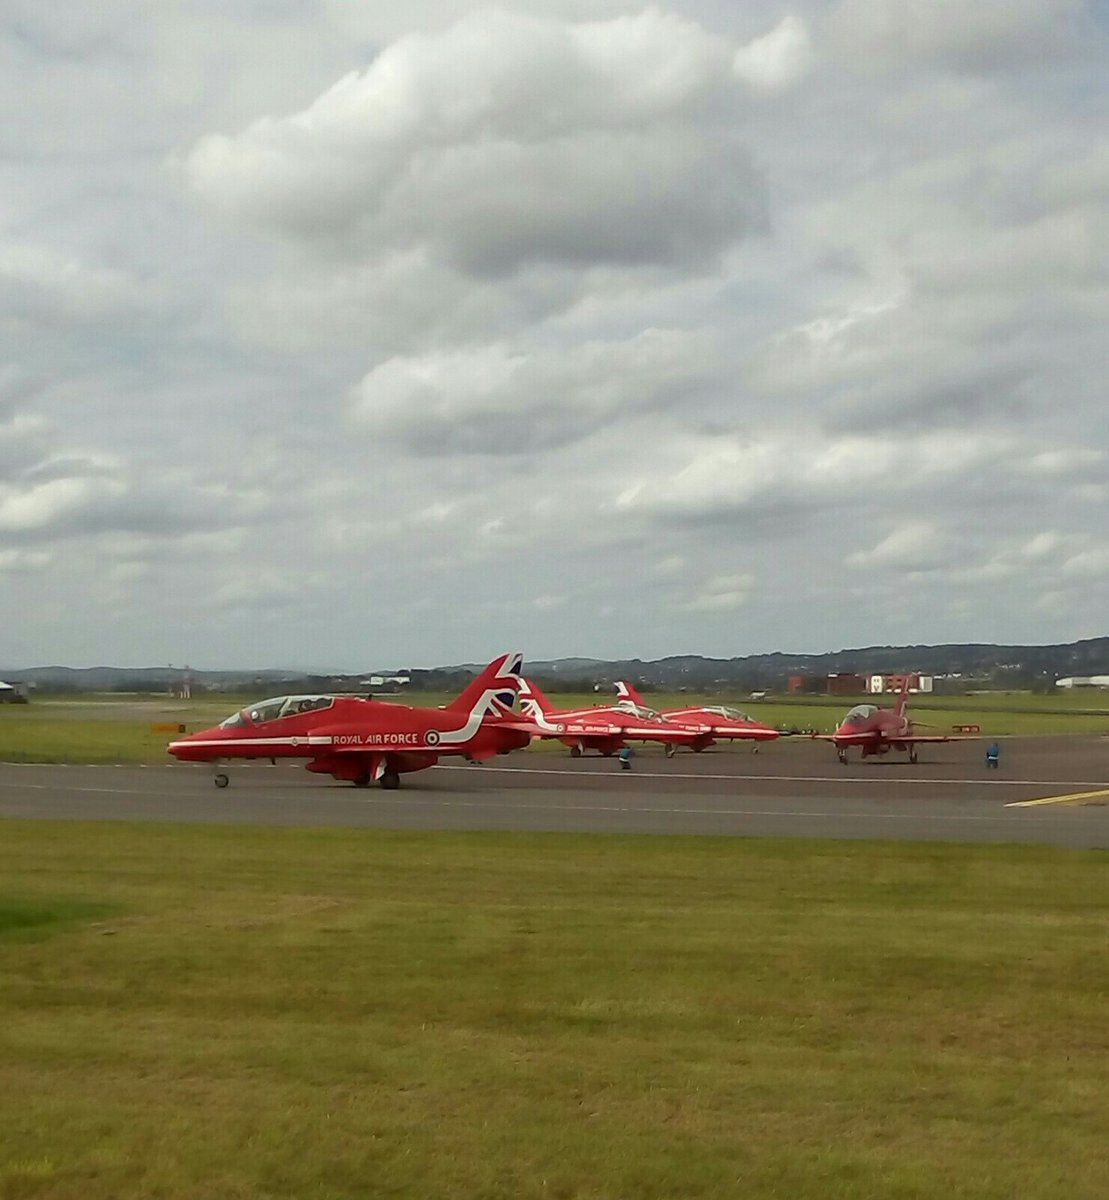 The #Redarrows at #exeterairport a couple weeks ago  departing for the #Guernsey #airshow The blues' neeling down doing there safety checks for the jet's on way out. https://t.co/XsehH5HxS3